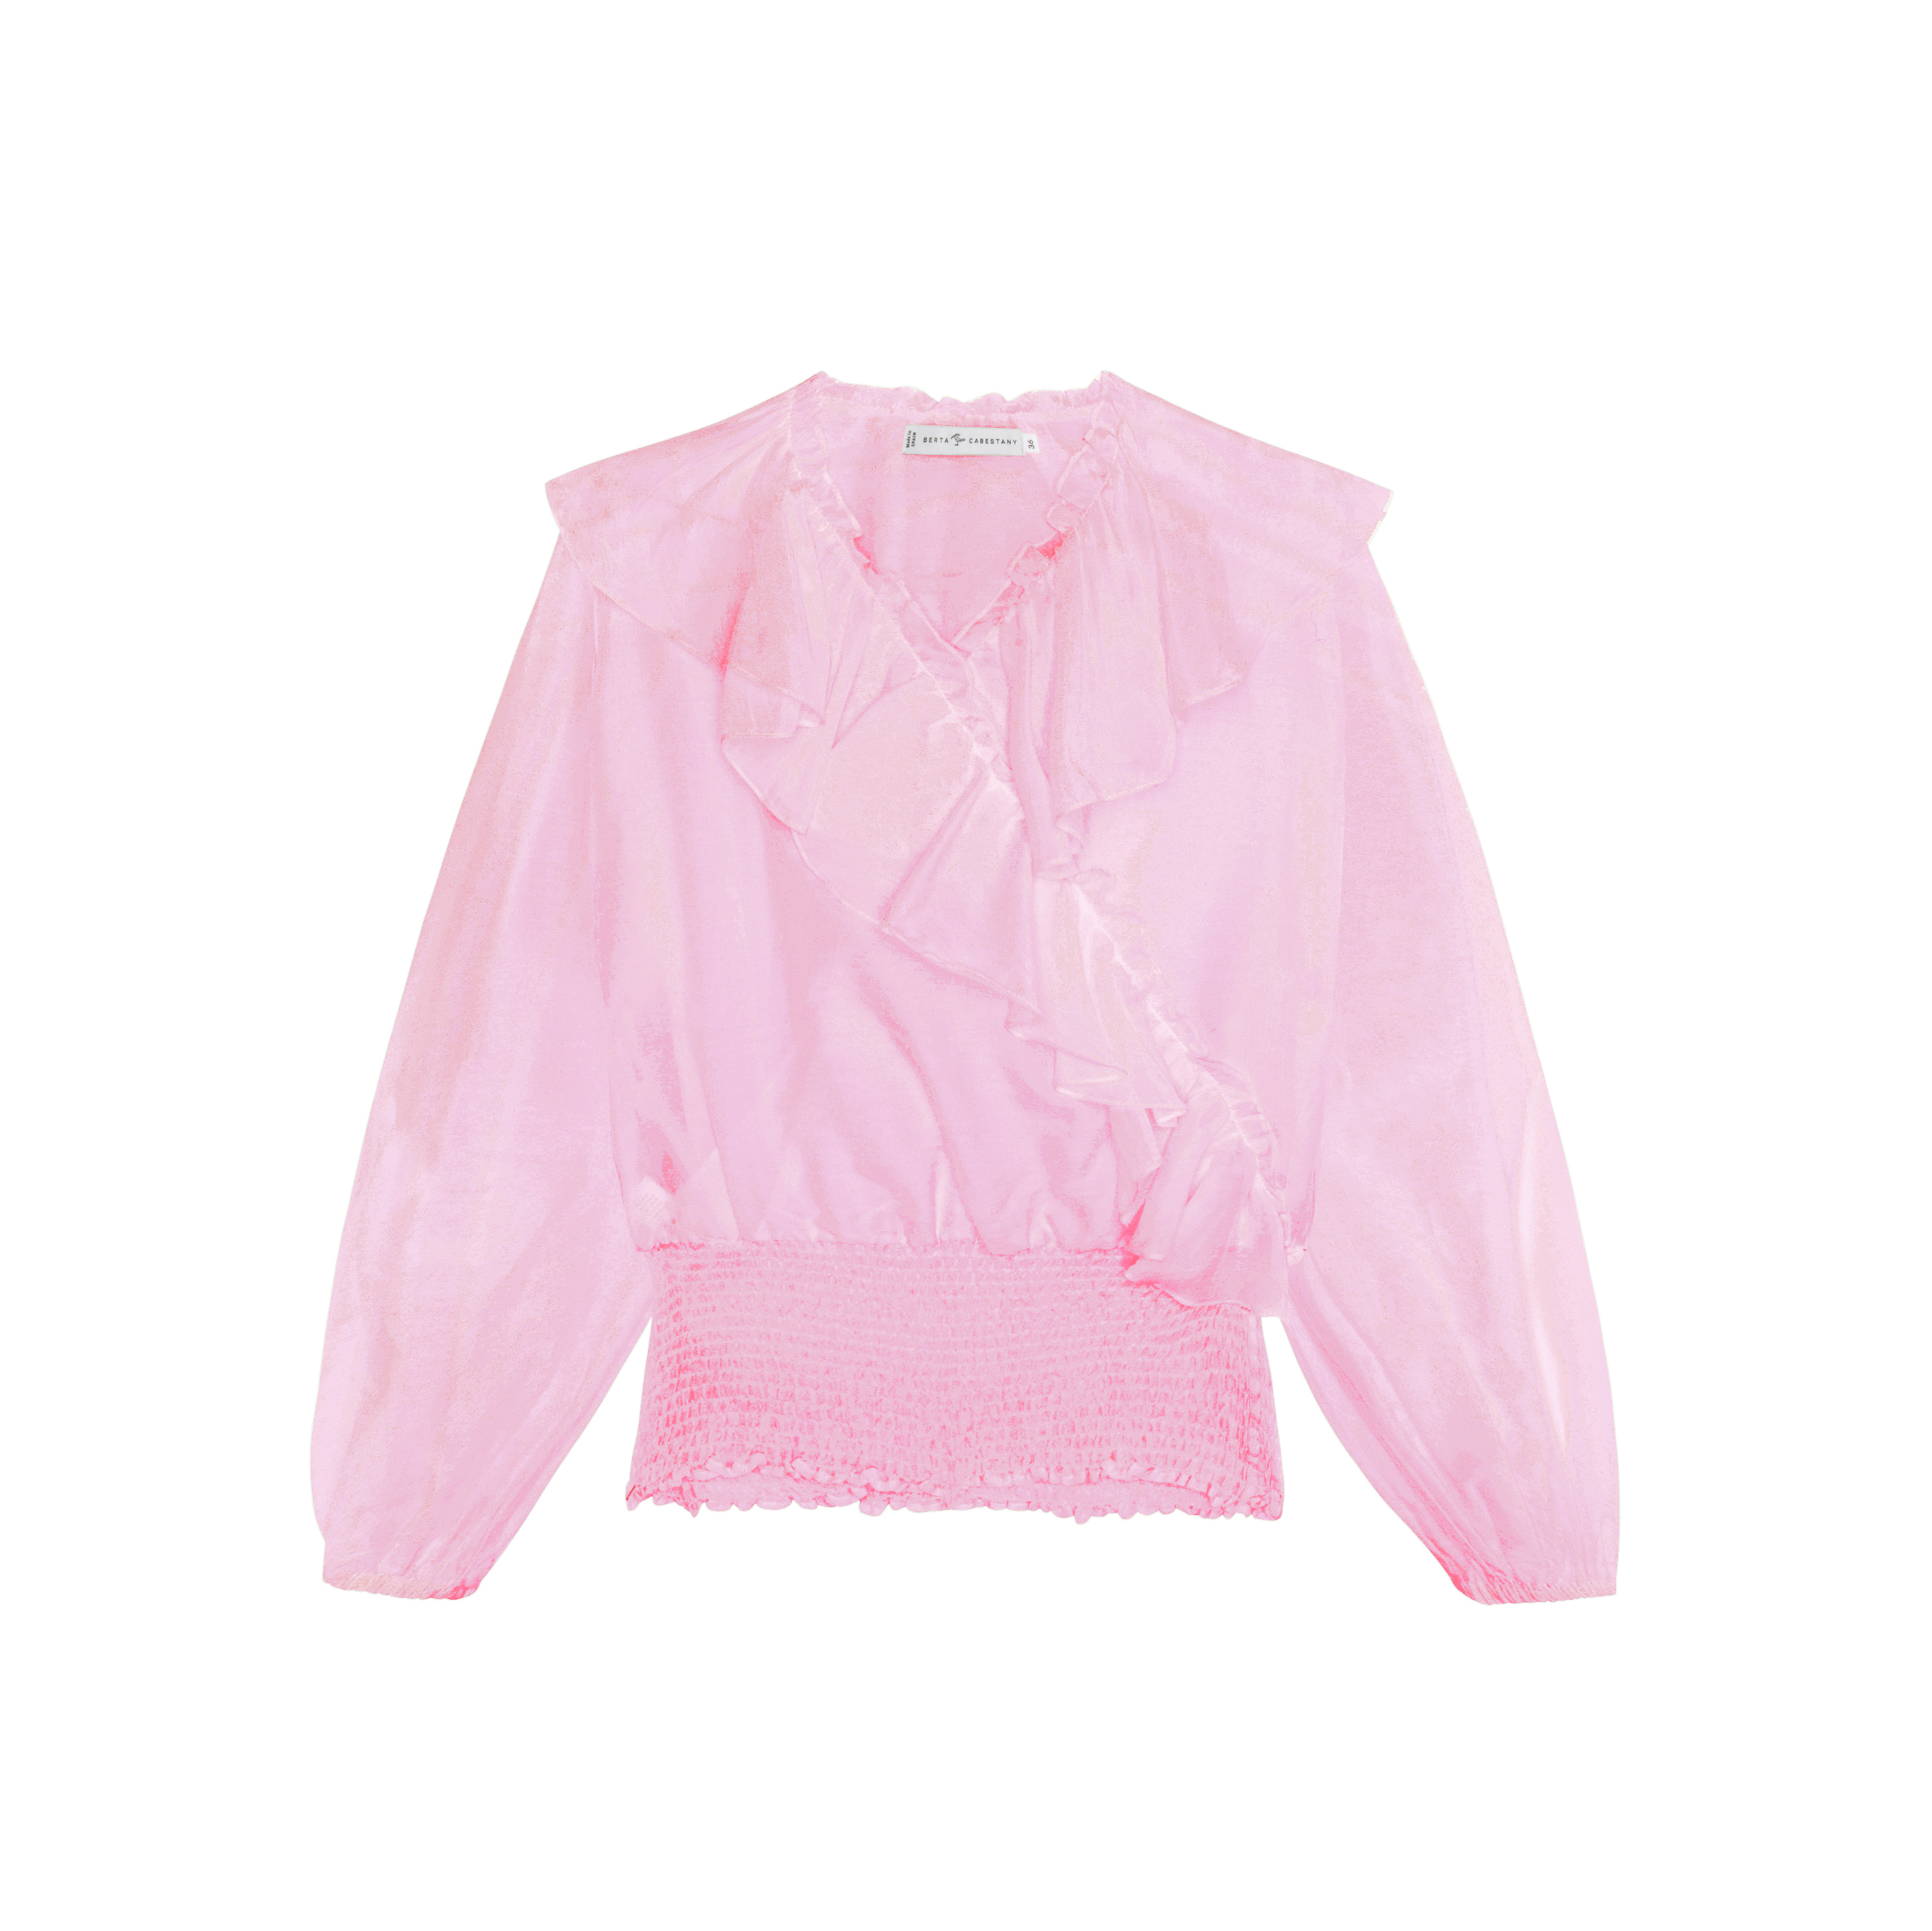 Rita Blouse - Pink by Berta Cabestany on curated-crowd.com